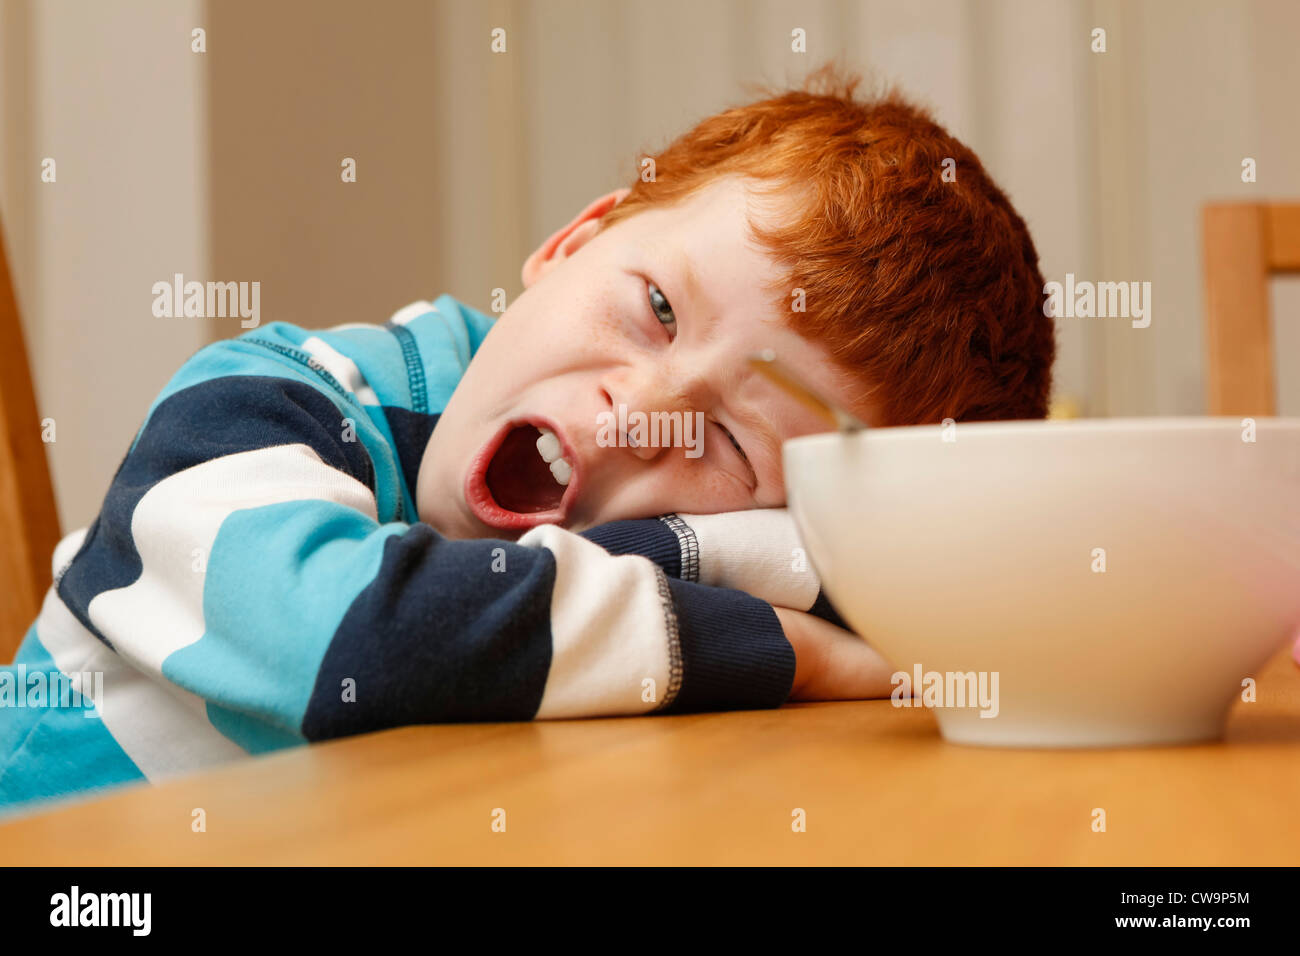 Remarkable 8 Year Old Boy Tired At The Breakfast Table Stock Photo Download Free Architecture Designs Terchretrmadebymaigaardcom